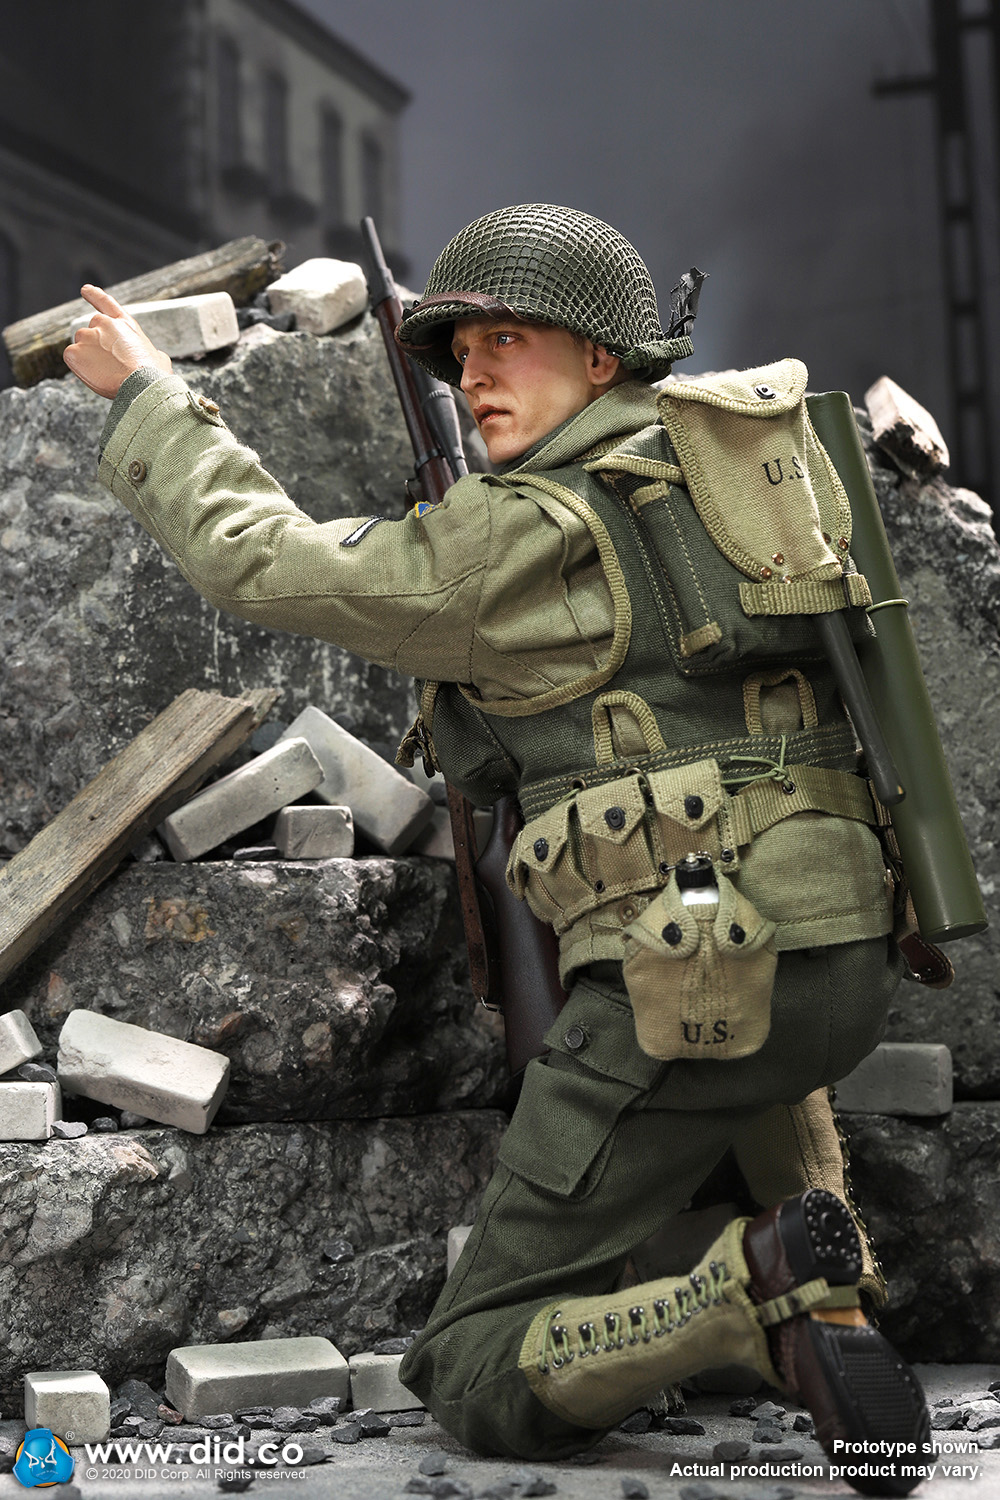 DiD - NEW PRODUCT: DiD: A80144 WWII US 2nd Ranger Battalion Series 4 Private Jackson 31112